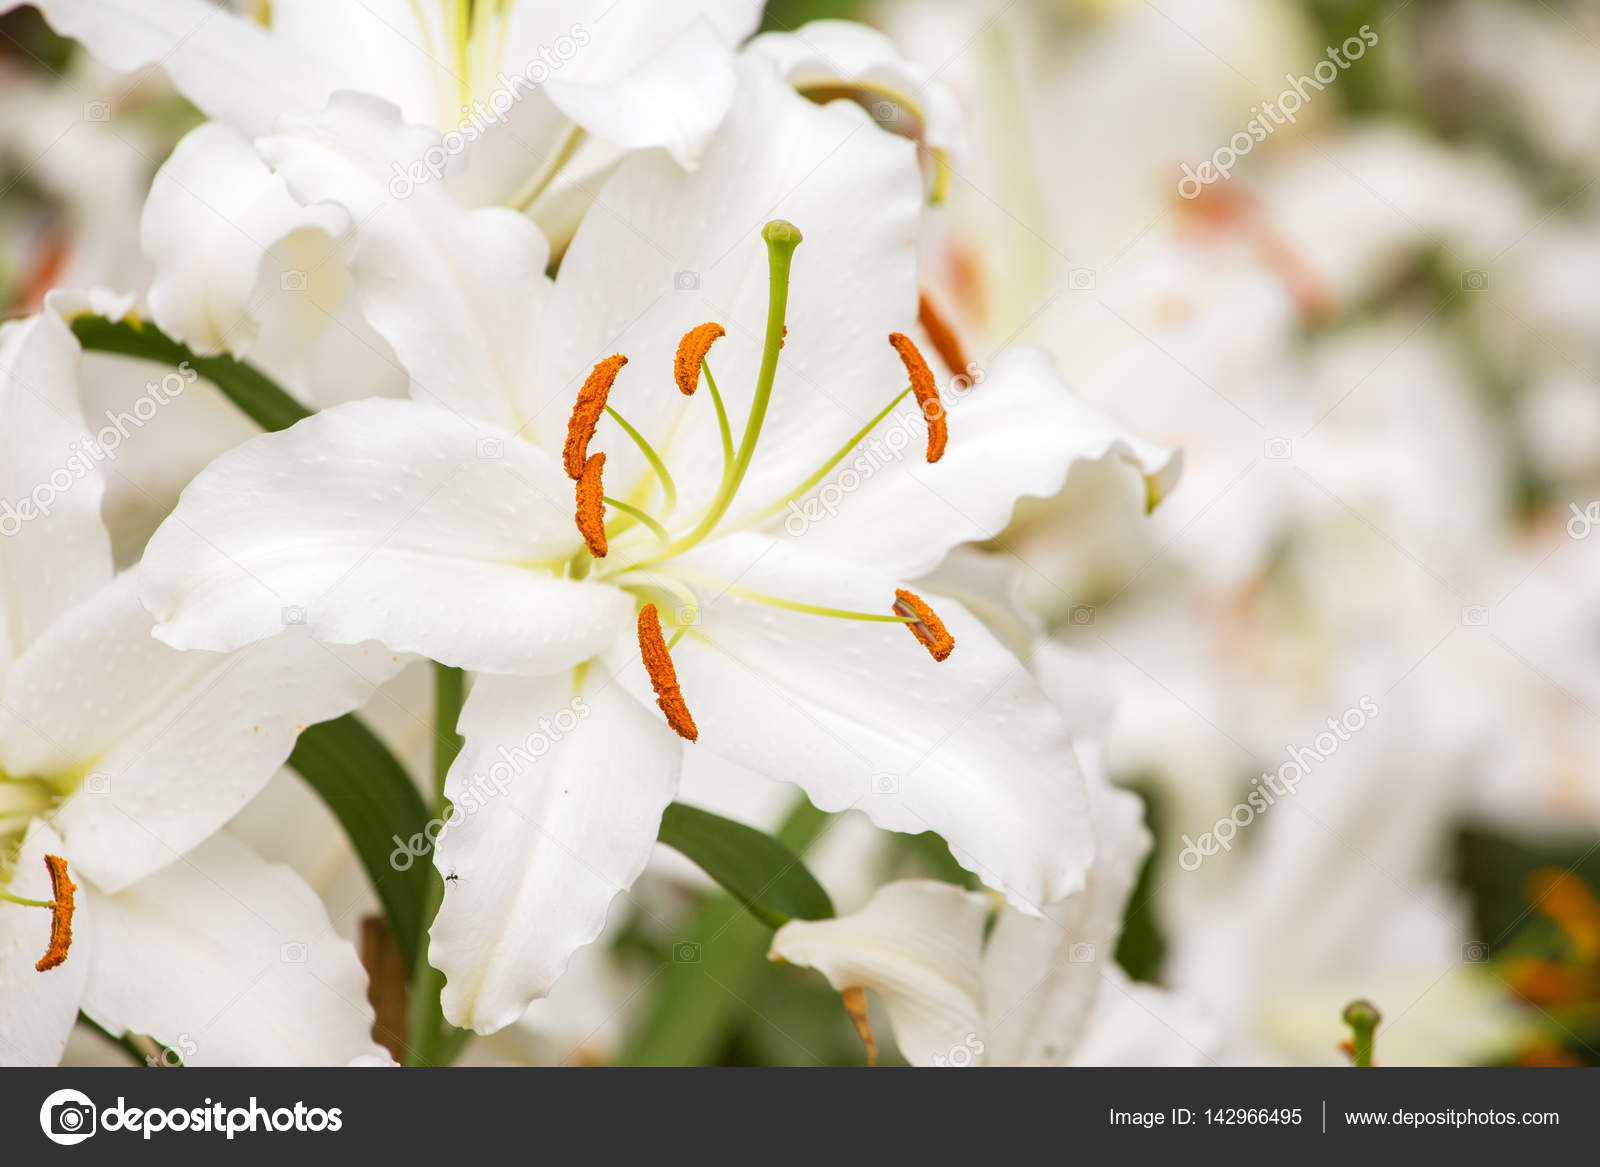 White asiatic lily stock photo mazzzur 142966495 white asiatic lily flower in garden photo by mazzzur izmirmasajfo